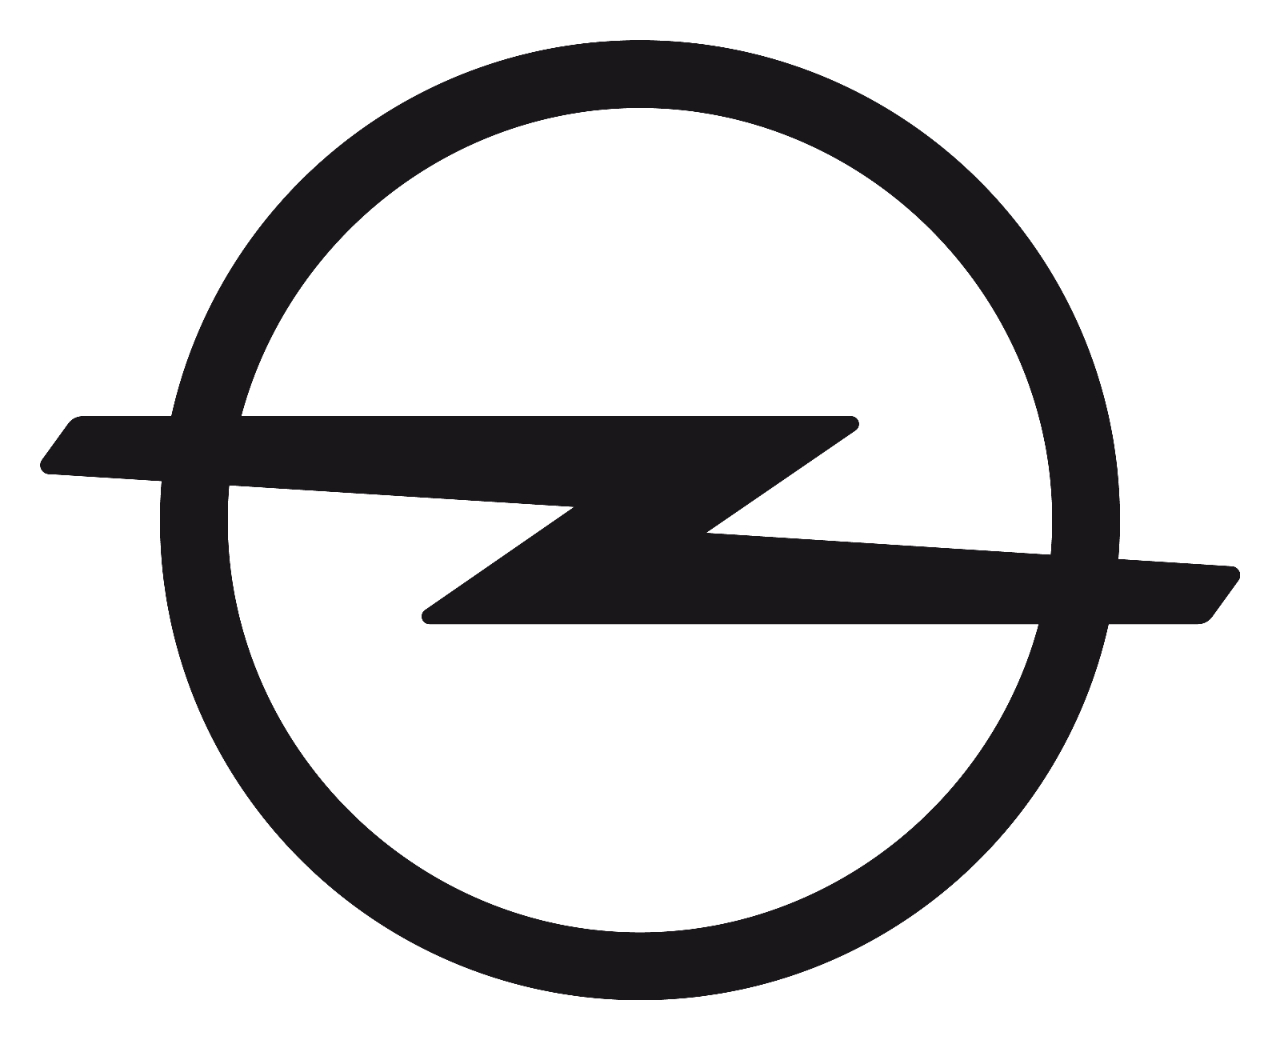 File:opel Logo 2017.png - Opel, Transparent background PNG HD thumbnail